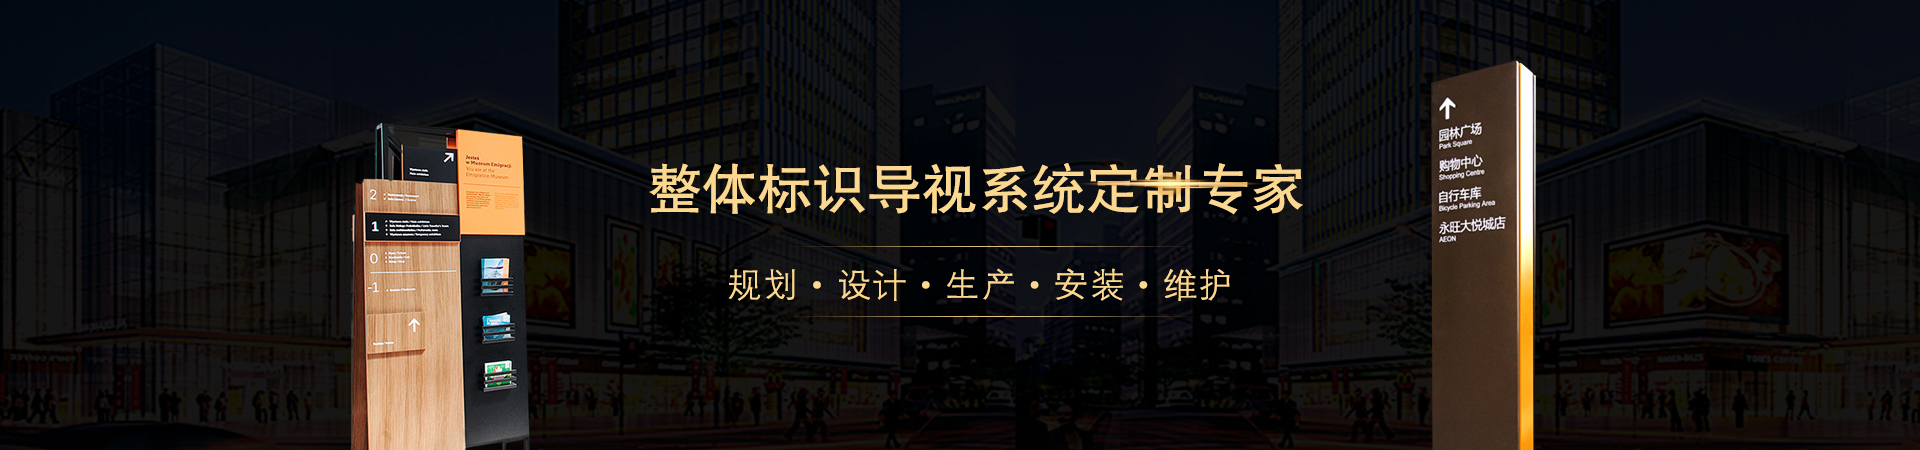 http://www.xjgbs.cn/data/upload/201912/20191231162517_862.jpg